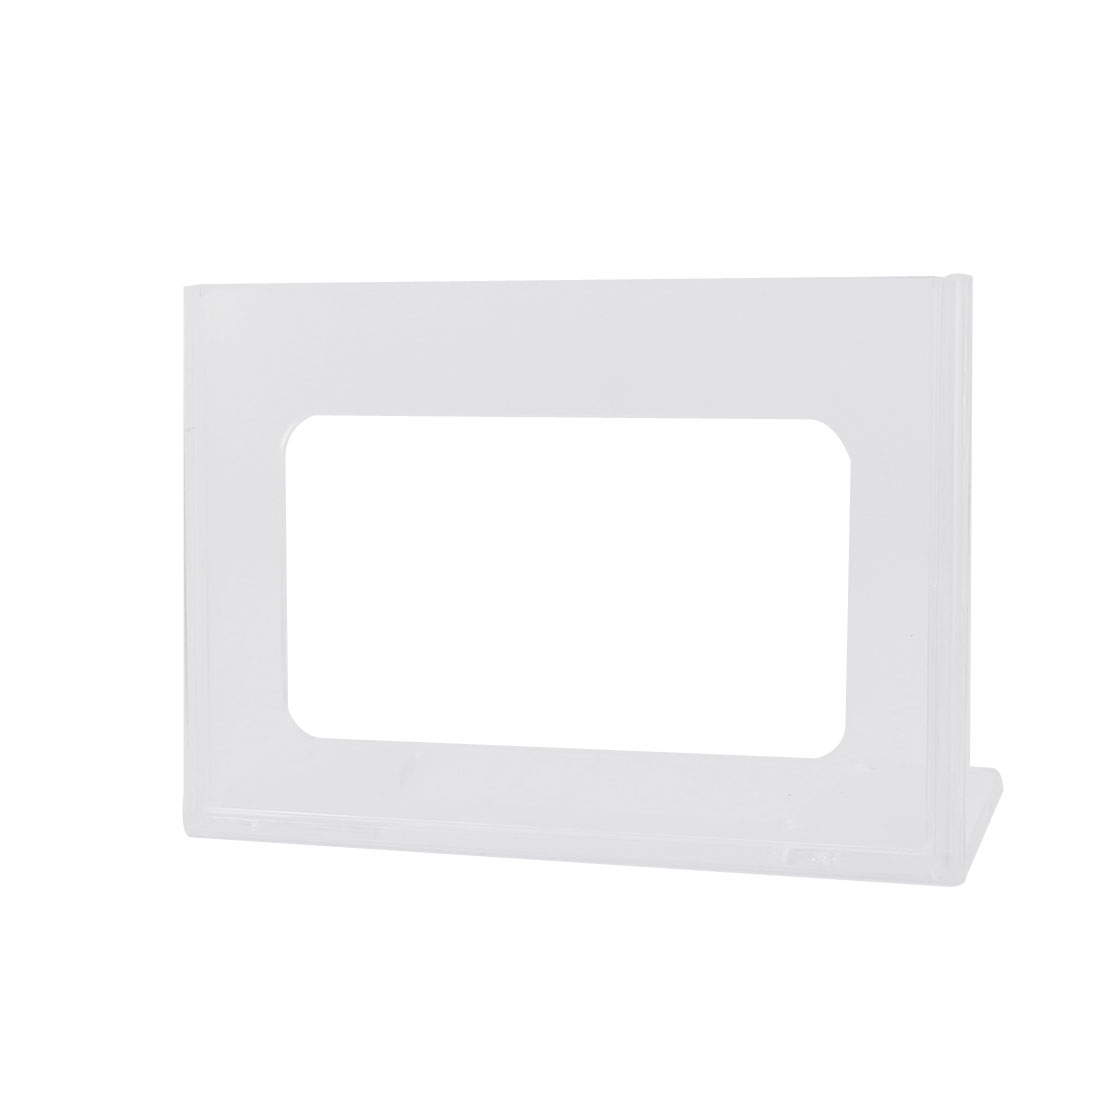 Restaurant Menu Table Number Plastic L Shaped Card Display Holder Stand Clear